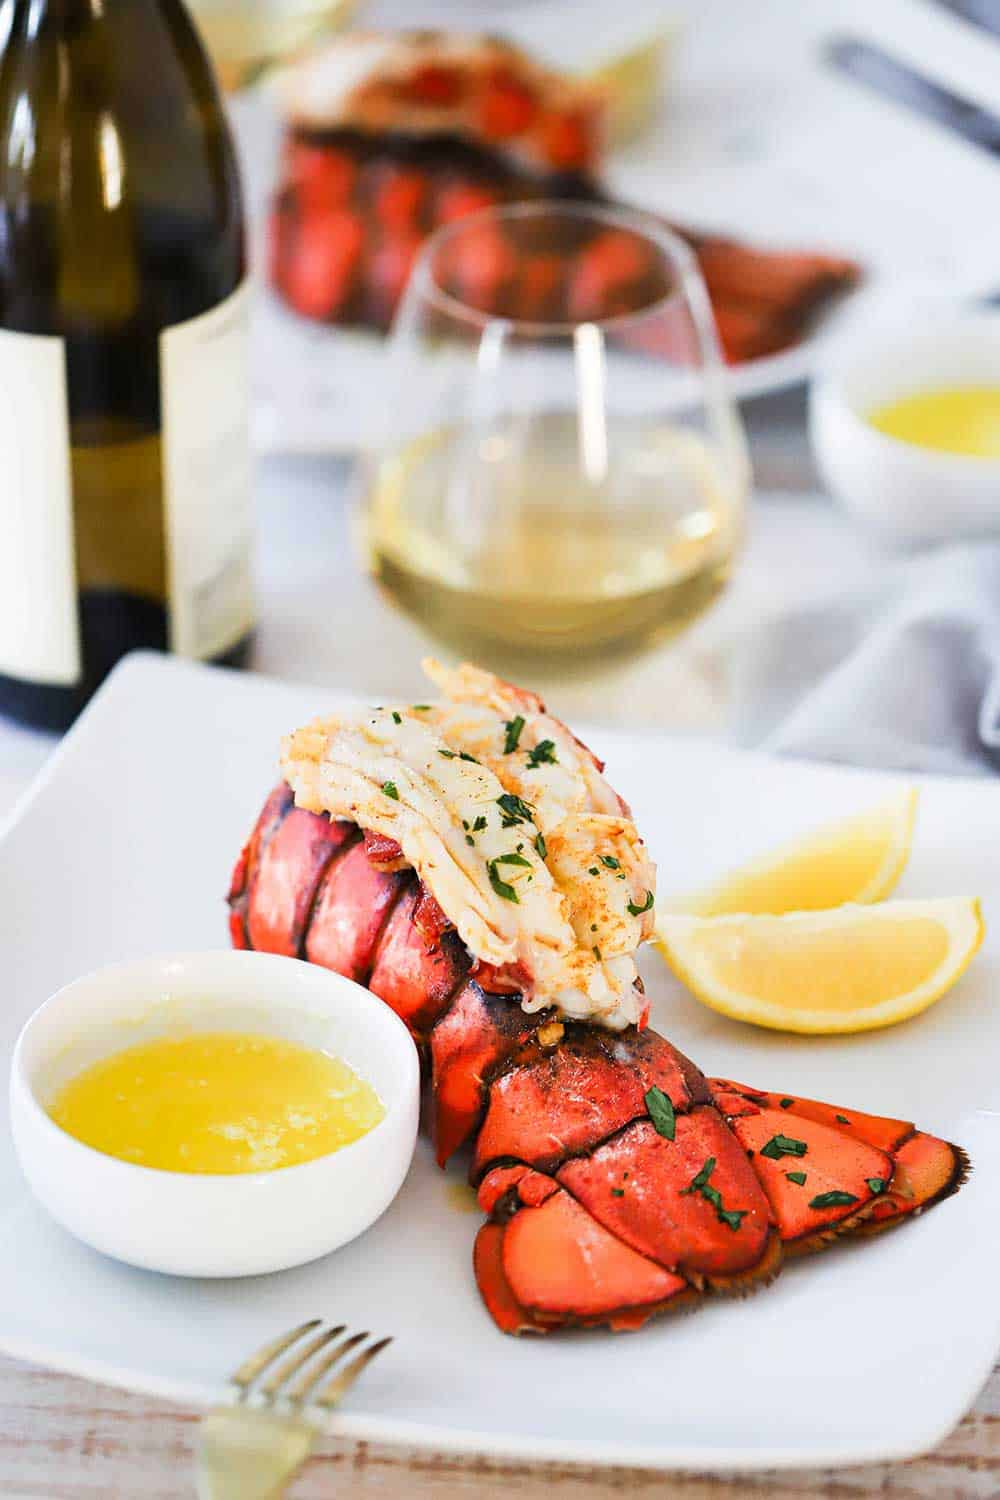 A square white dinner plate filled with a fully cooked lobster tail with a small bowl of drawn butter and lemon wedges next to it, all next to a glass of white wine.